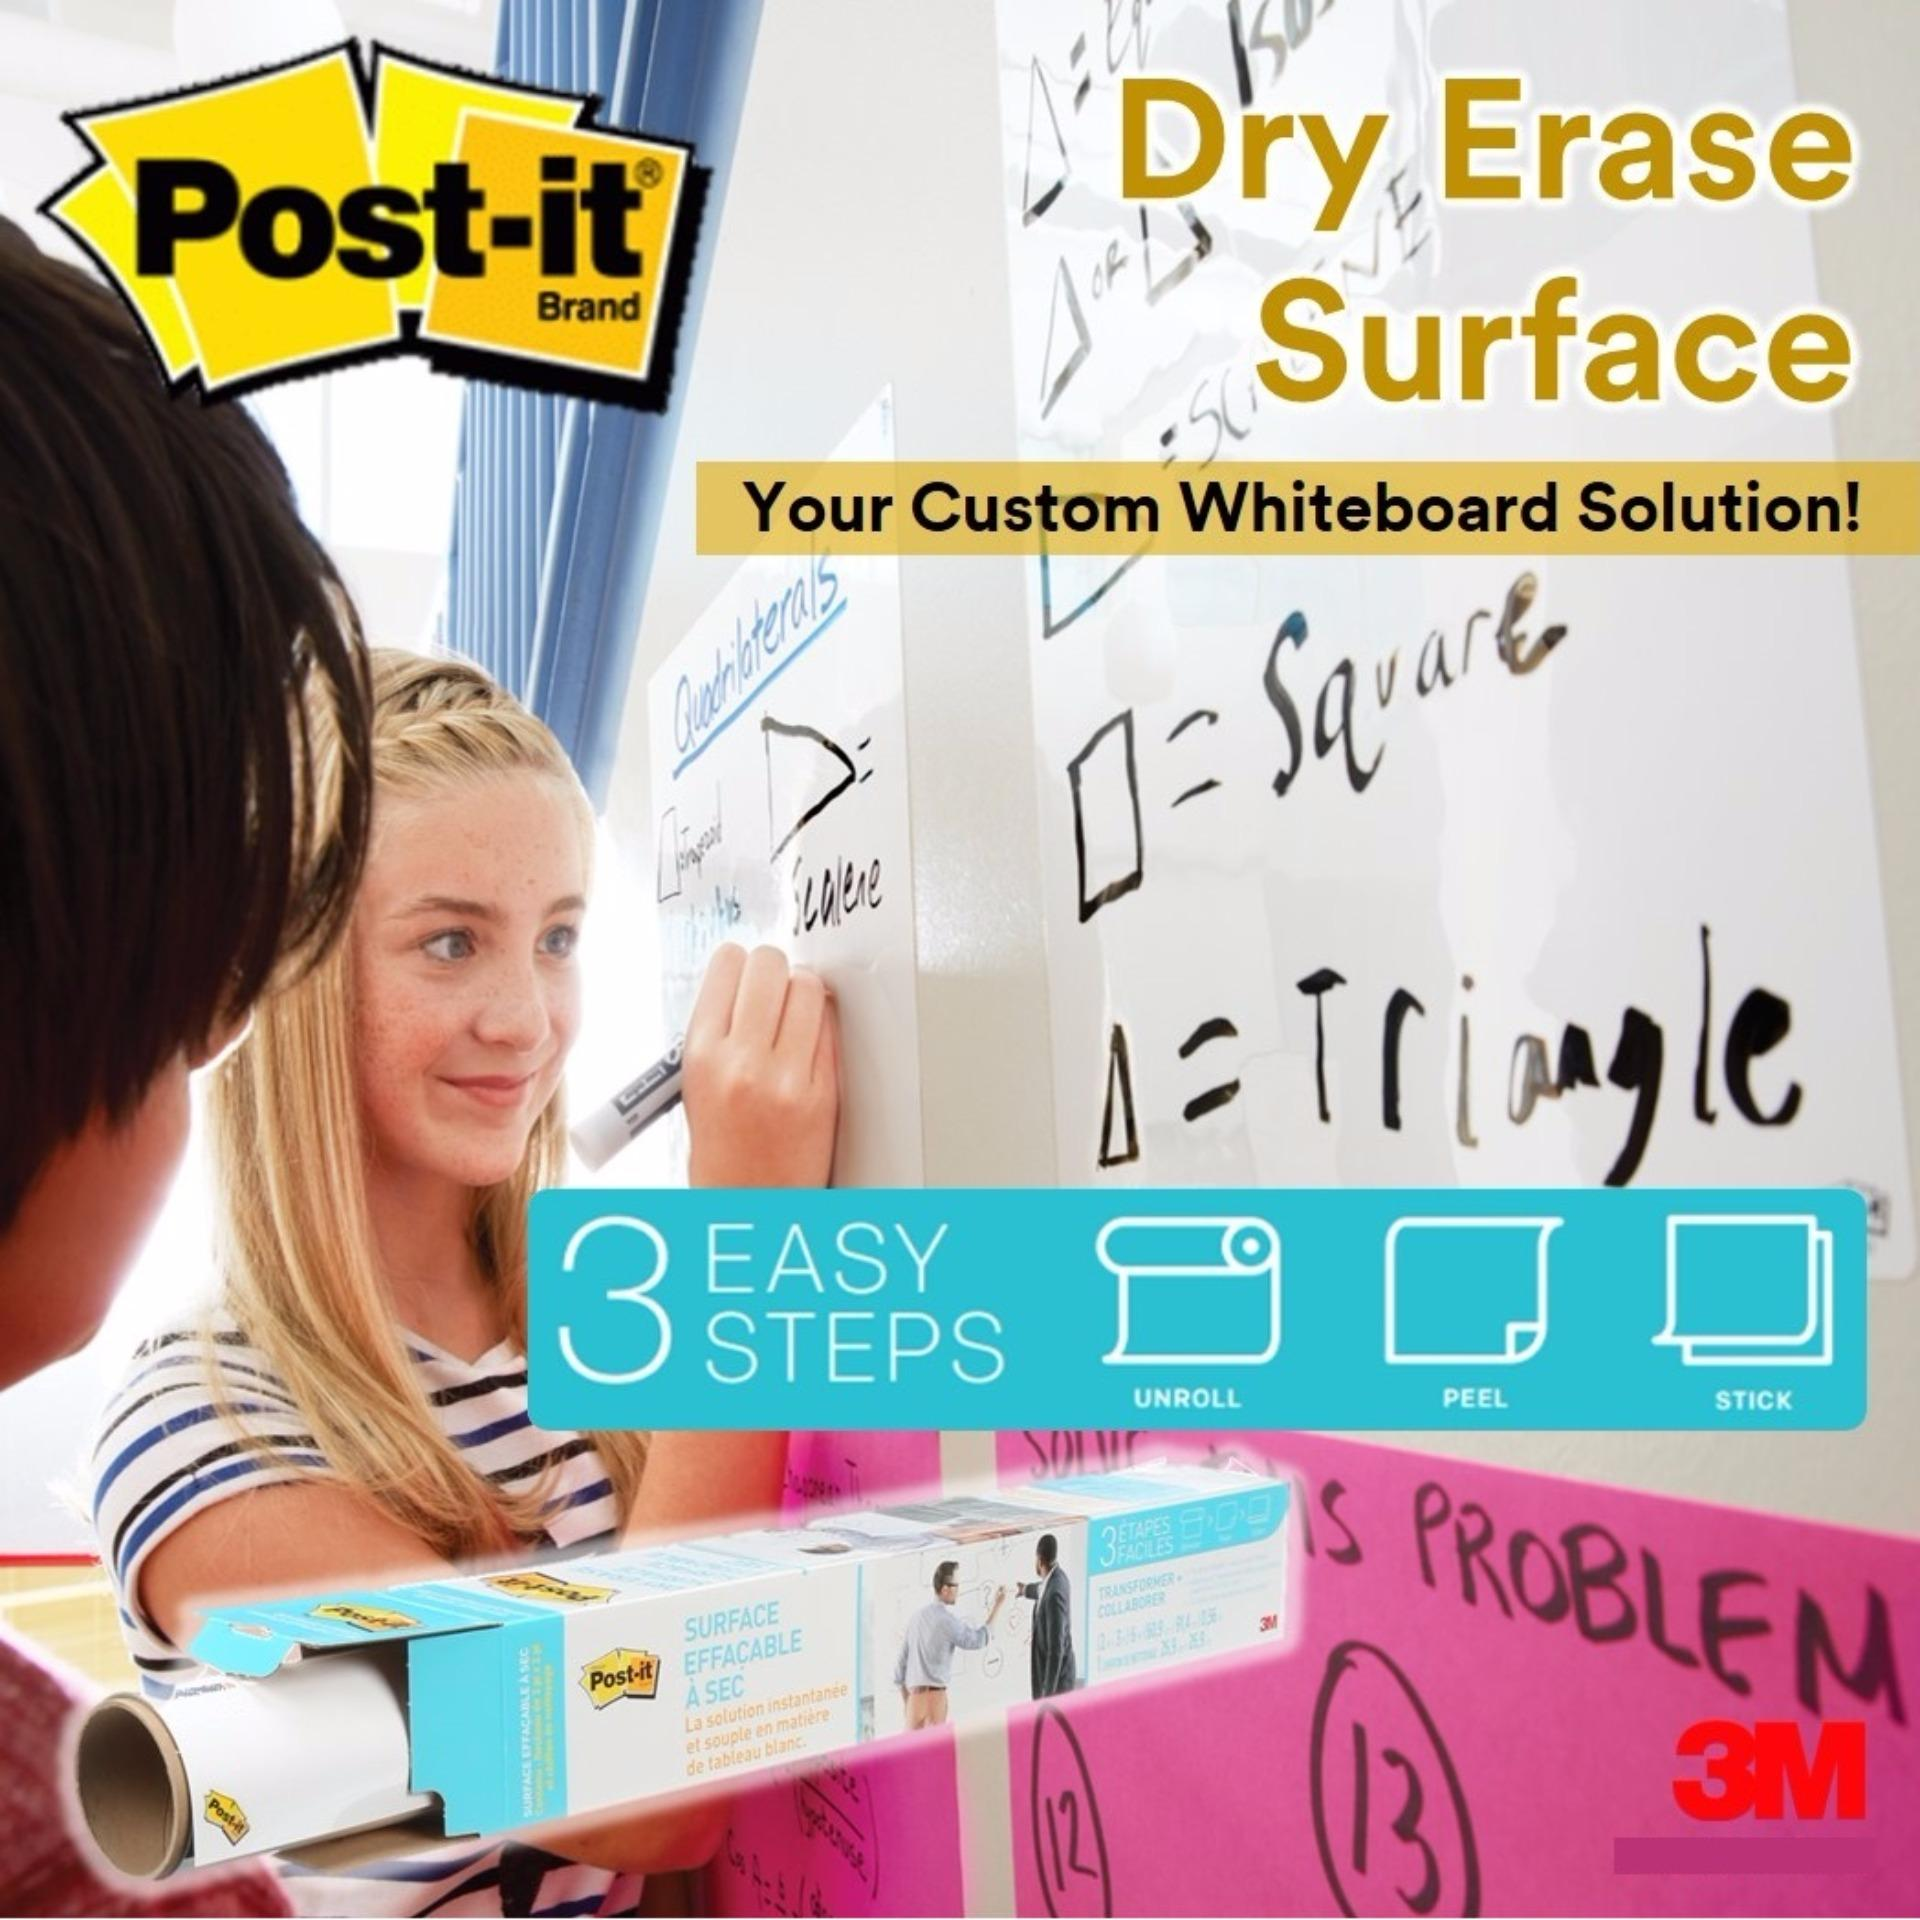 3m Post-It Dry Erase Surface By 3m Official Store.